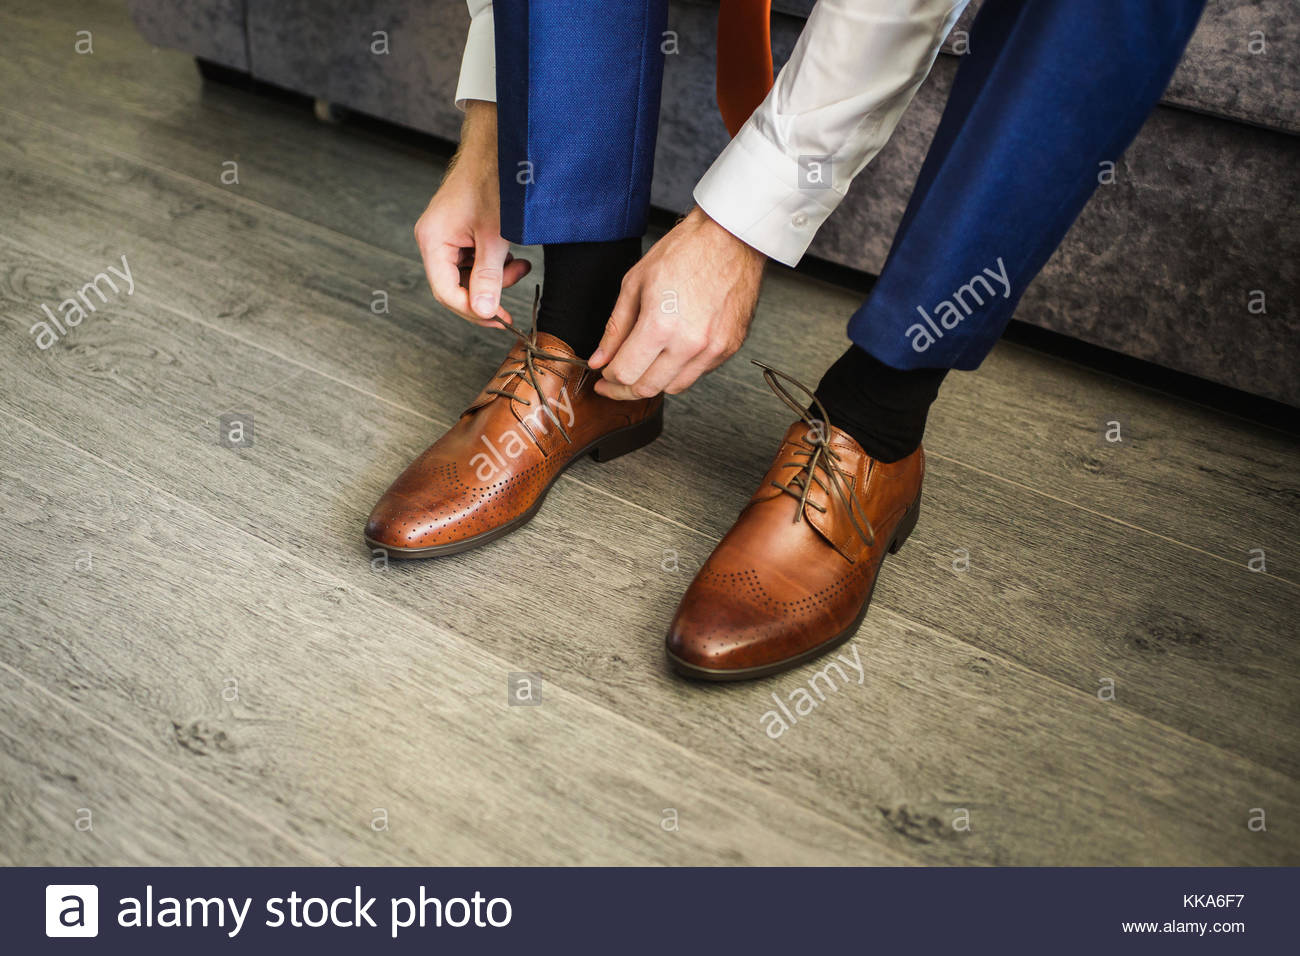 Putting Laces In Dress Shoes